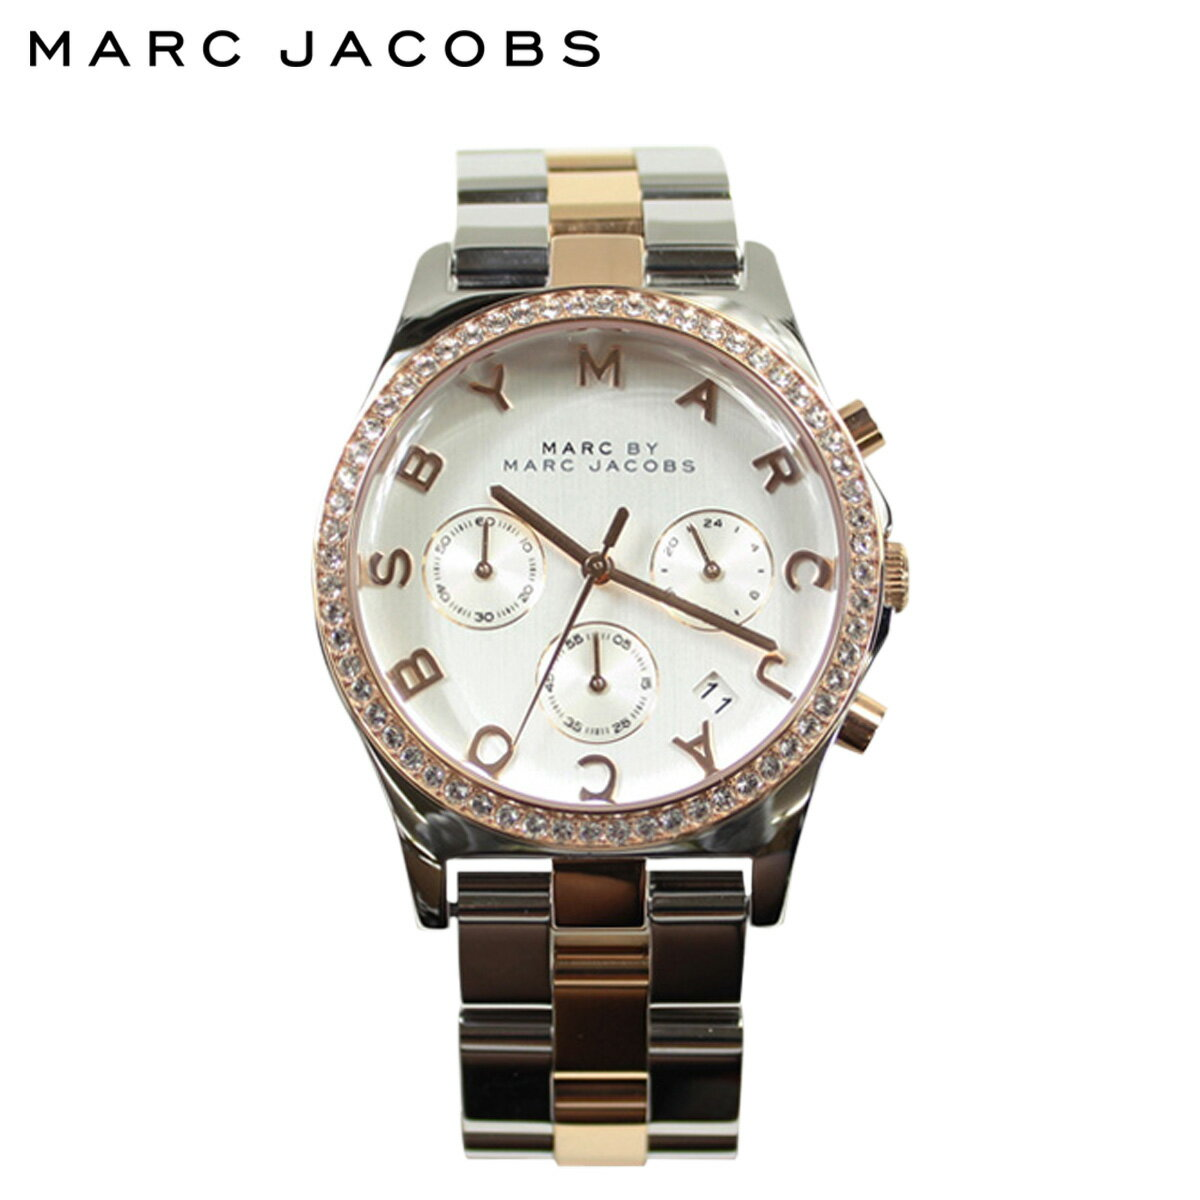 [SOLD OUT] MARC BY MARC JACOBS マーク バイ マーク ジェイコブス 腕時計  38mm ウォッチ 時計 シルバー ピンクゴールド MBM3106 HENRY ヘンリー  メンズ レディース:Whats up Sports